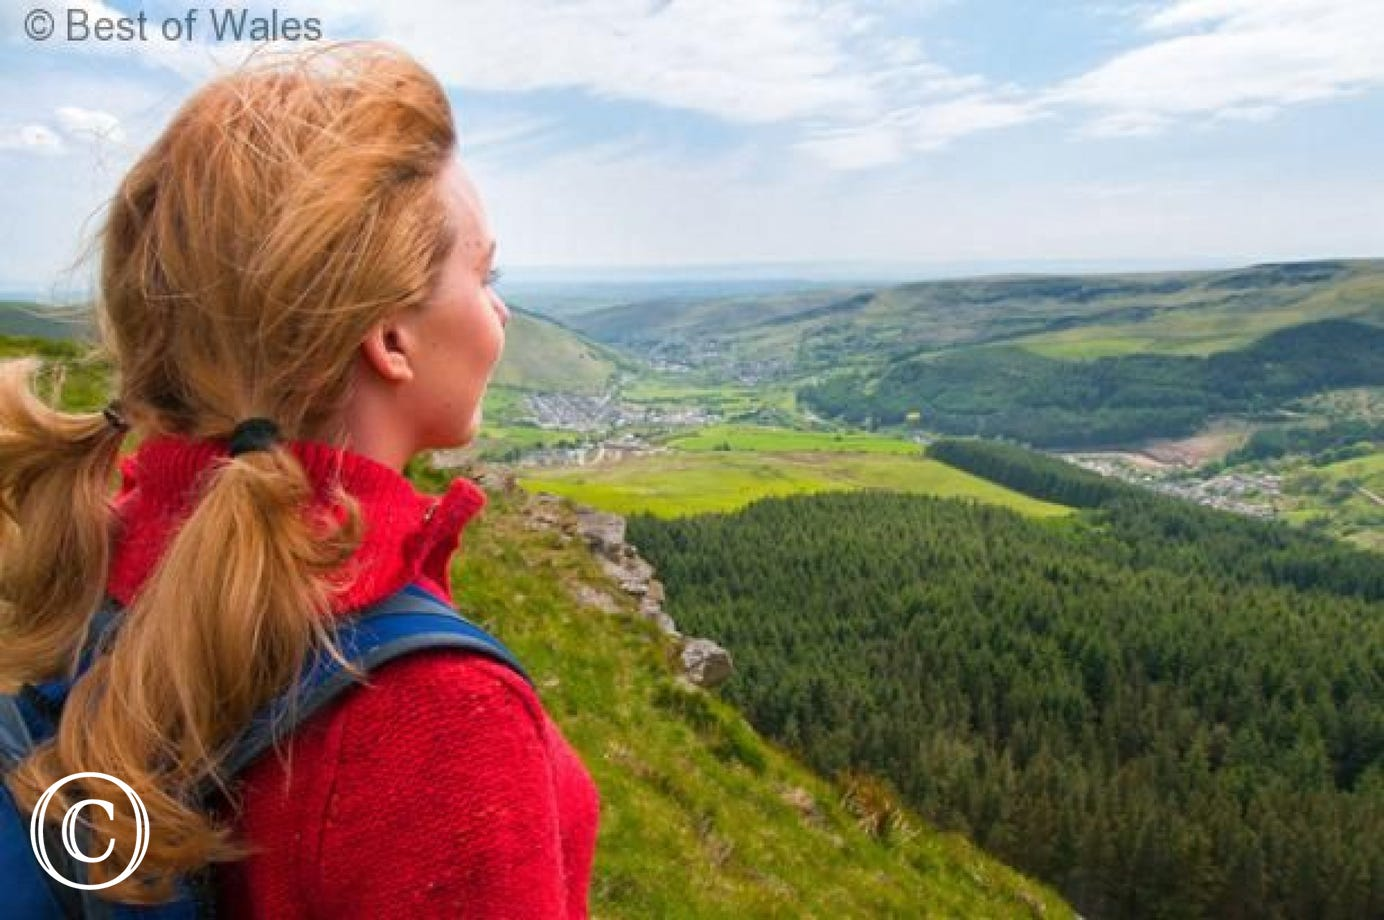 The beauty of the South Wales Valleys